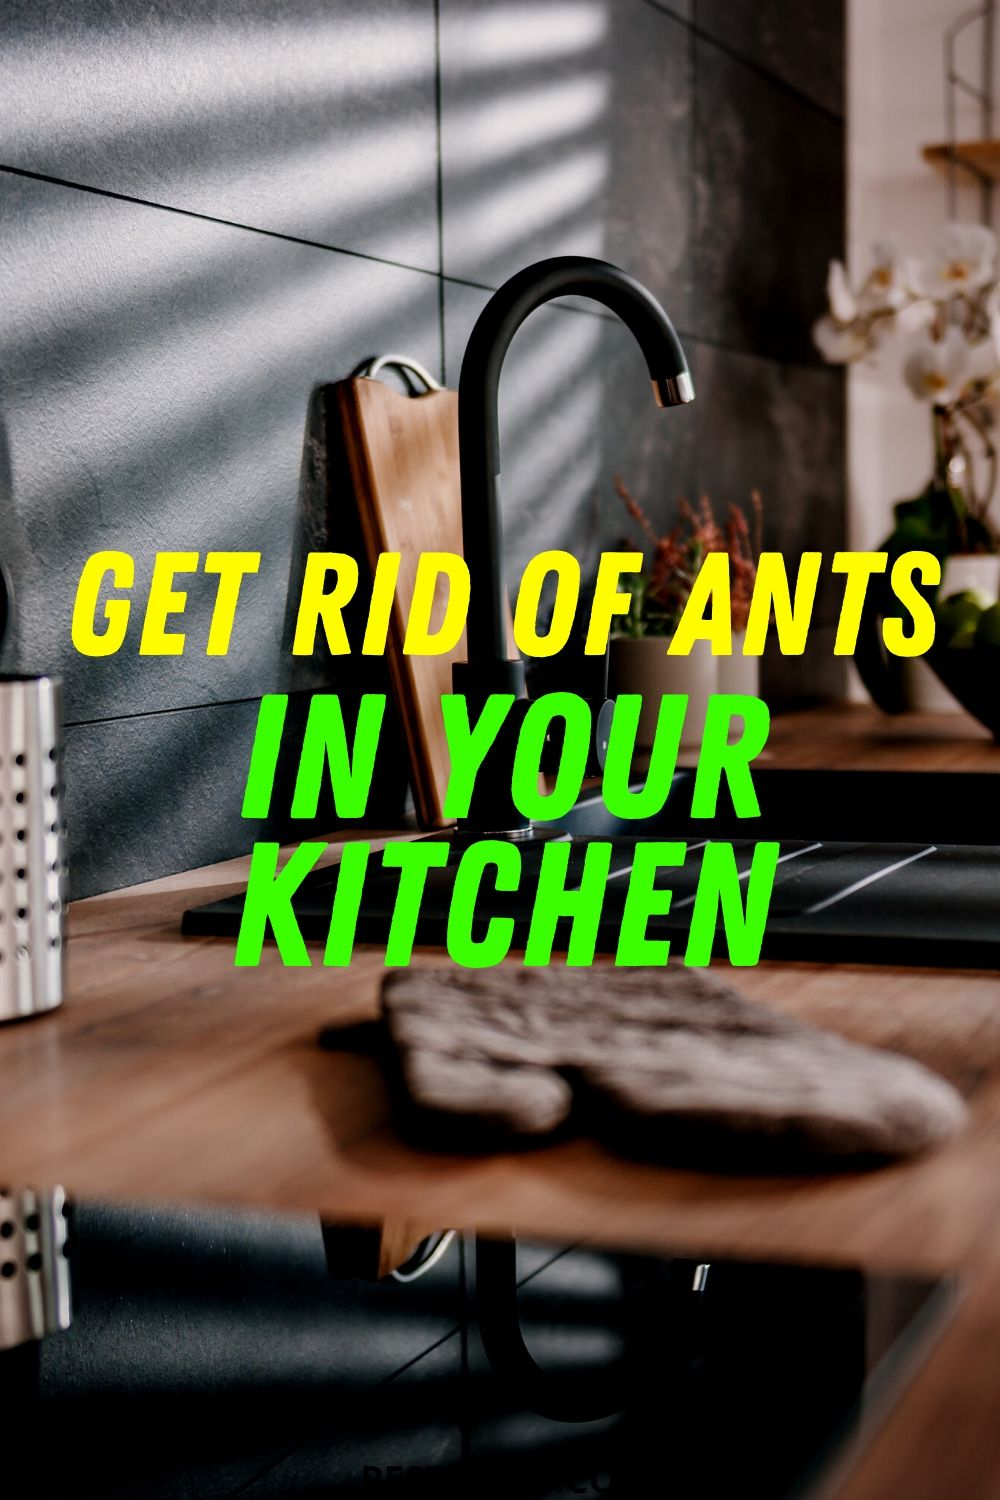 Get Rid of Ants in Your Kitchen